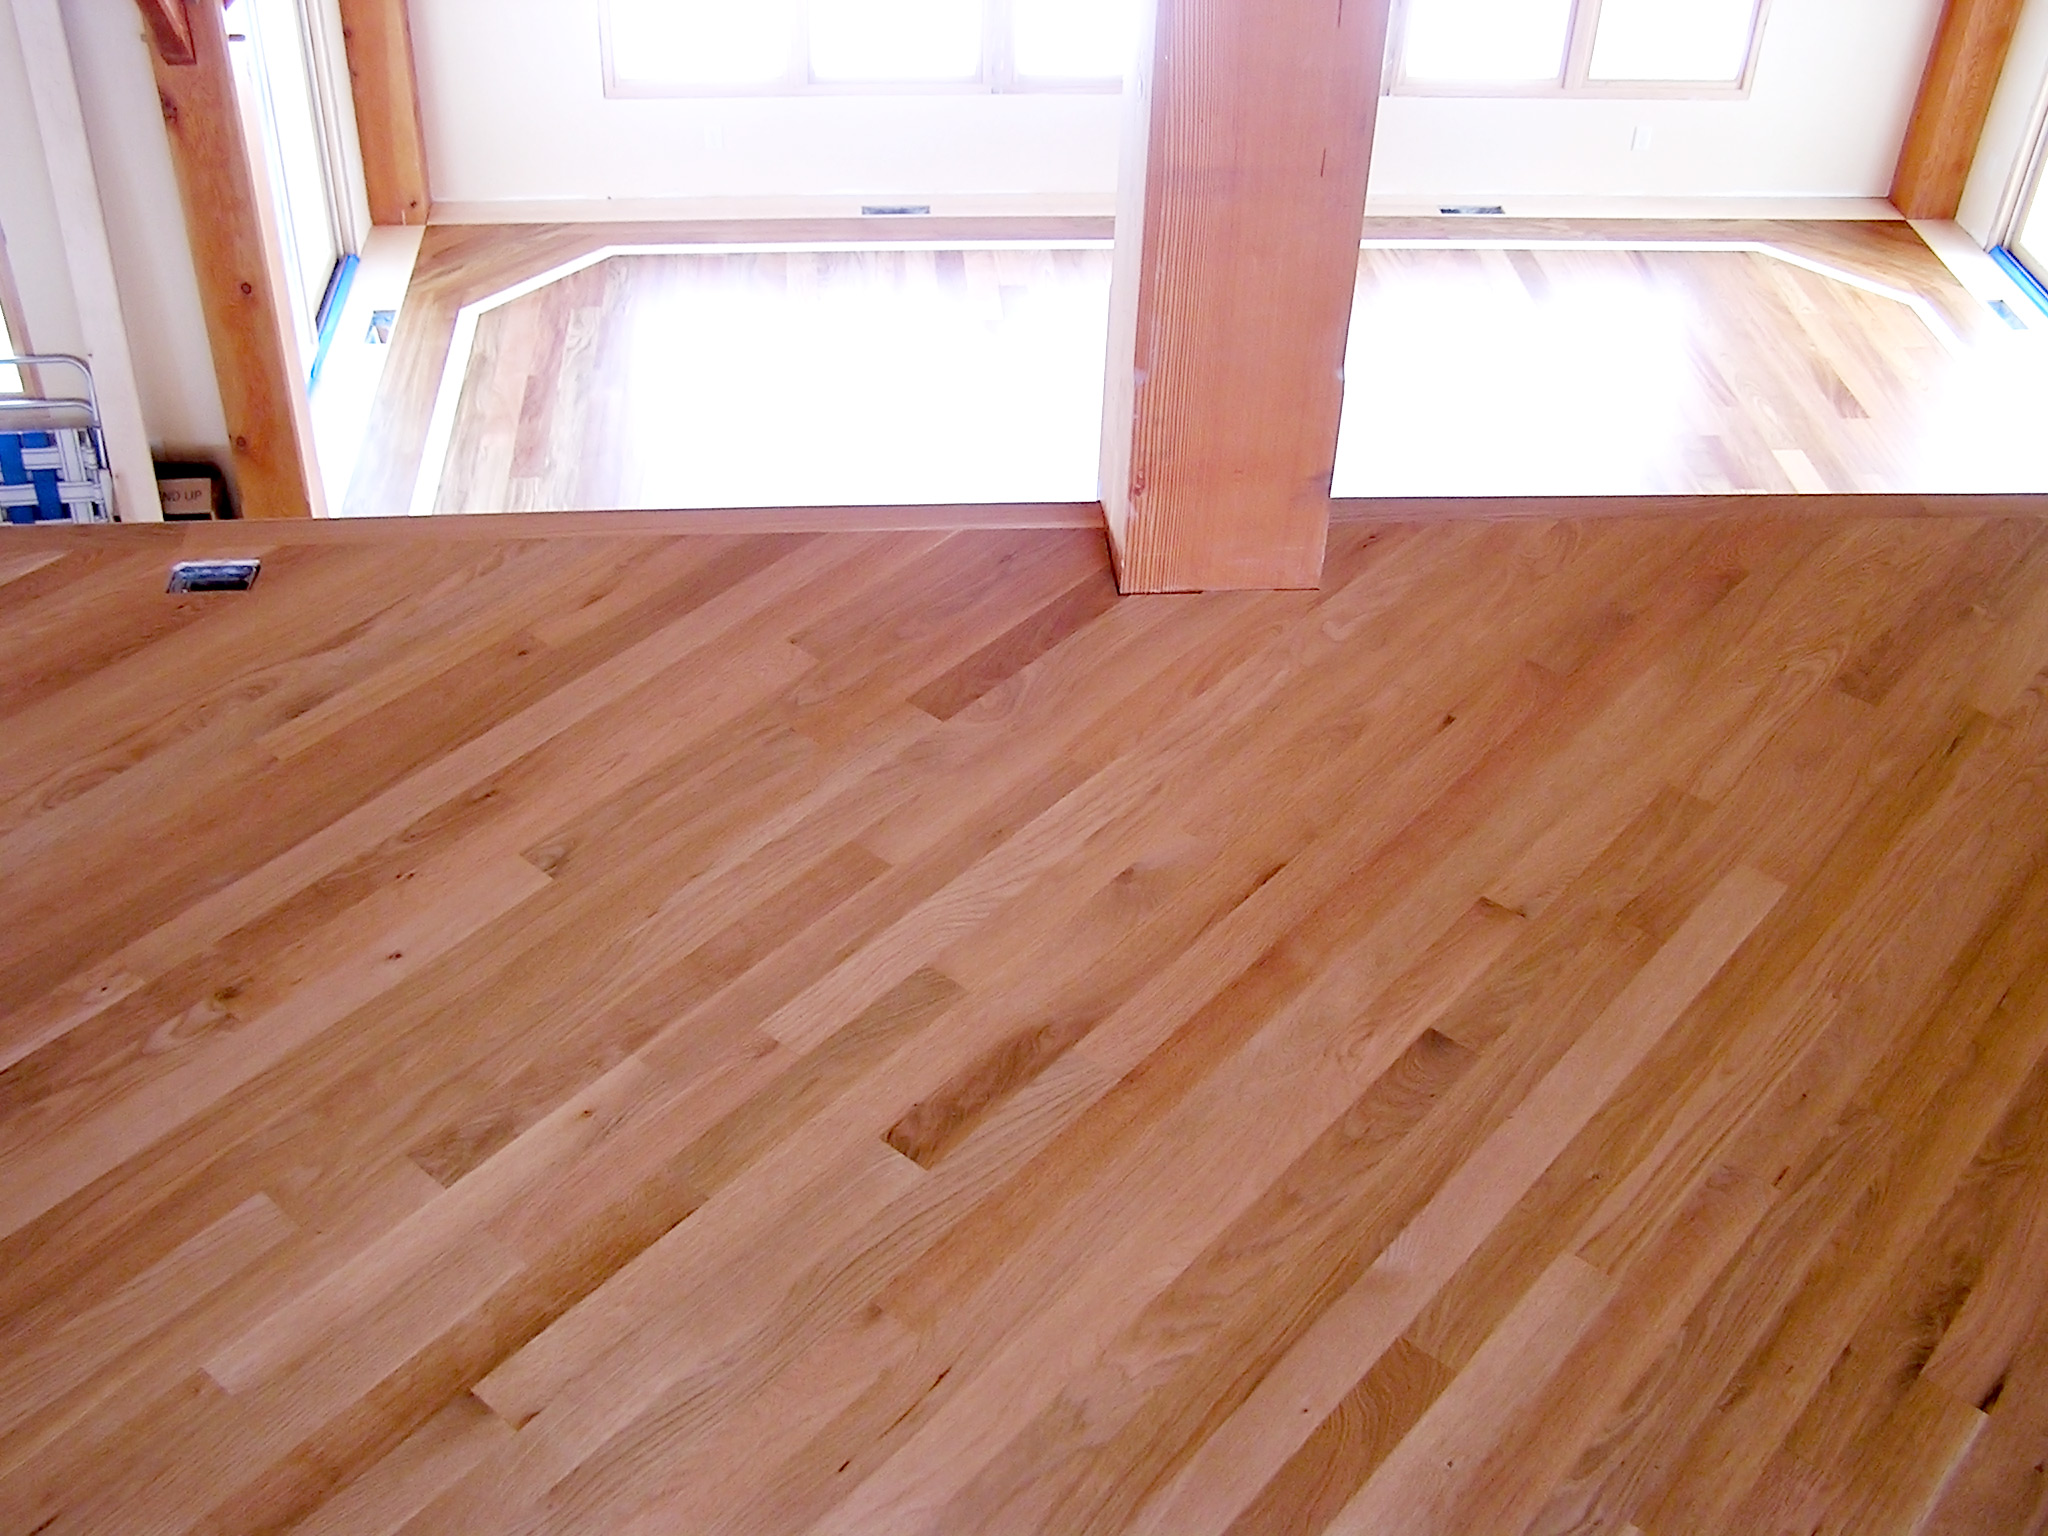 Hardwood Floor & Bamboo Flooring Installation in Dunn County